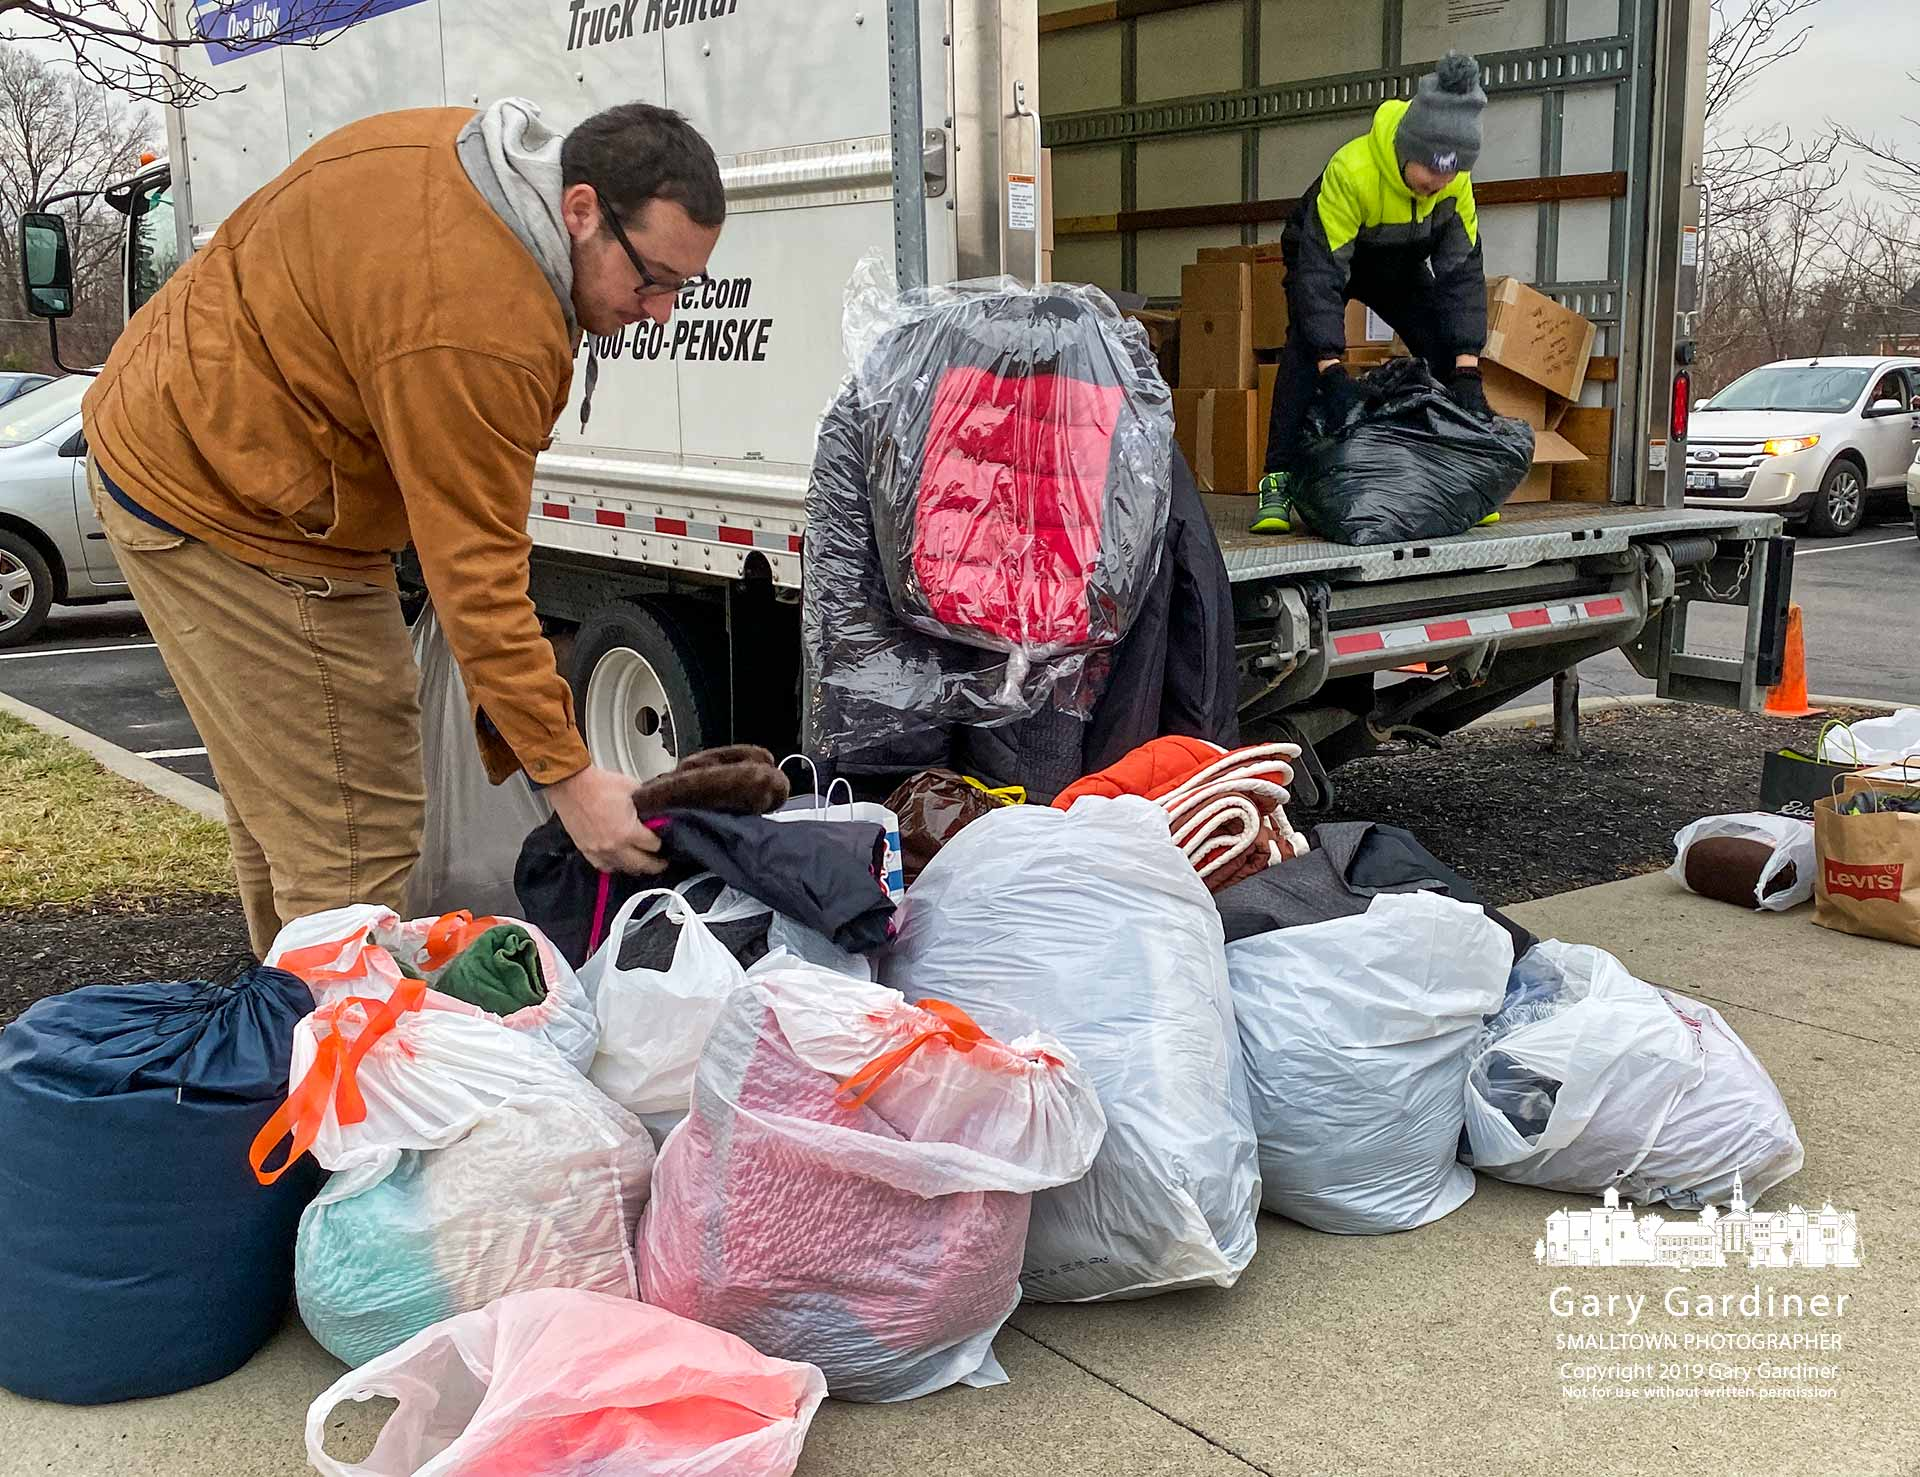 St. Paul the Apostle youth minister Brad Romantic helps sort through the winter coats, blankets, and bedding items donated by parishioners during Sunday Masses. My Final Photo for Dec. 15, 2019.